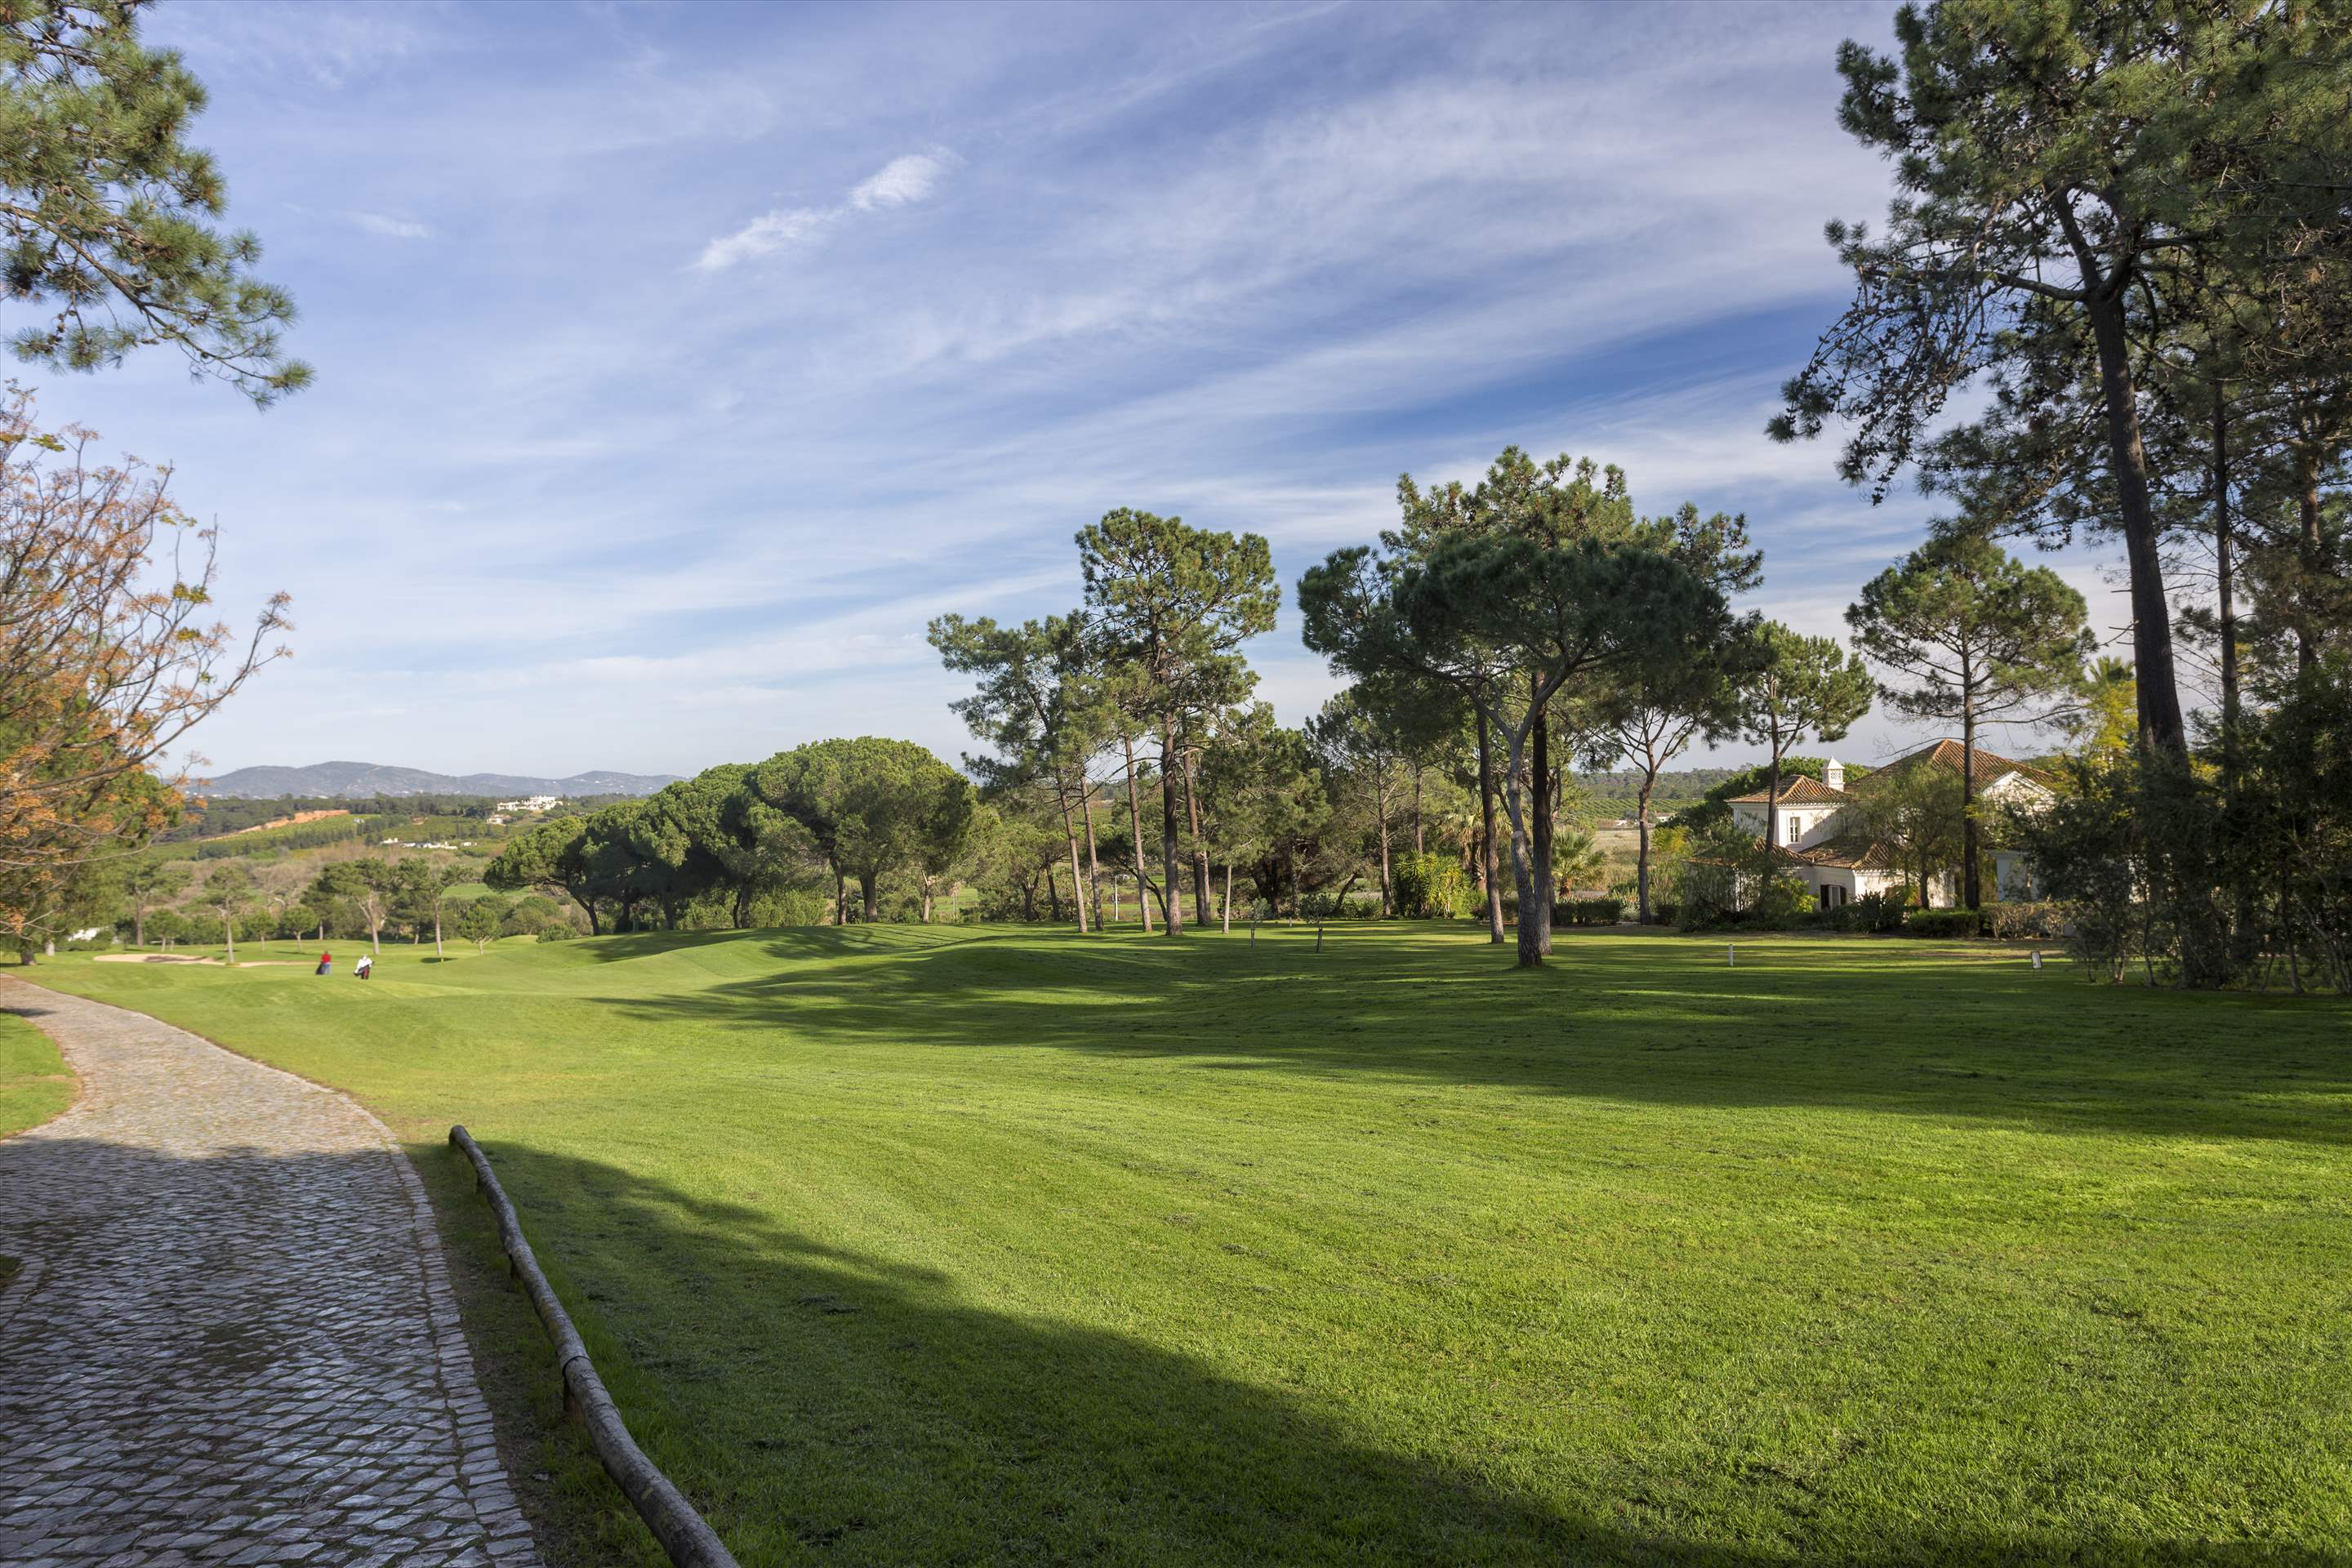 Villa Palmeiras Altas, 5 bedroom villa in Quinta do Lago, Algarve Photo #40